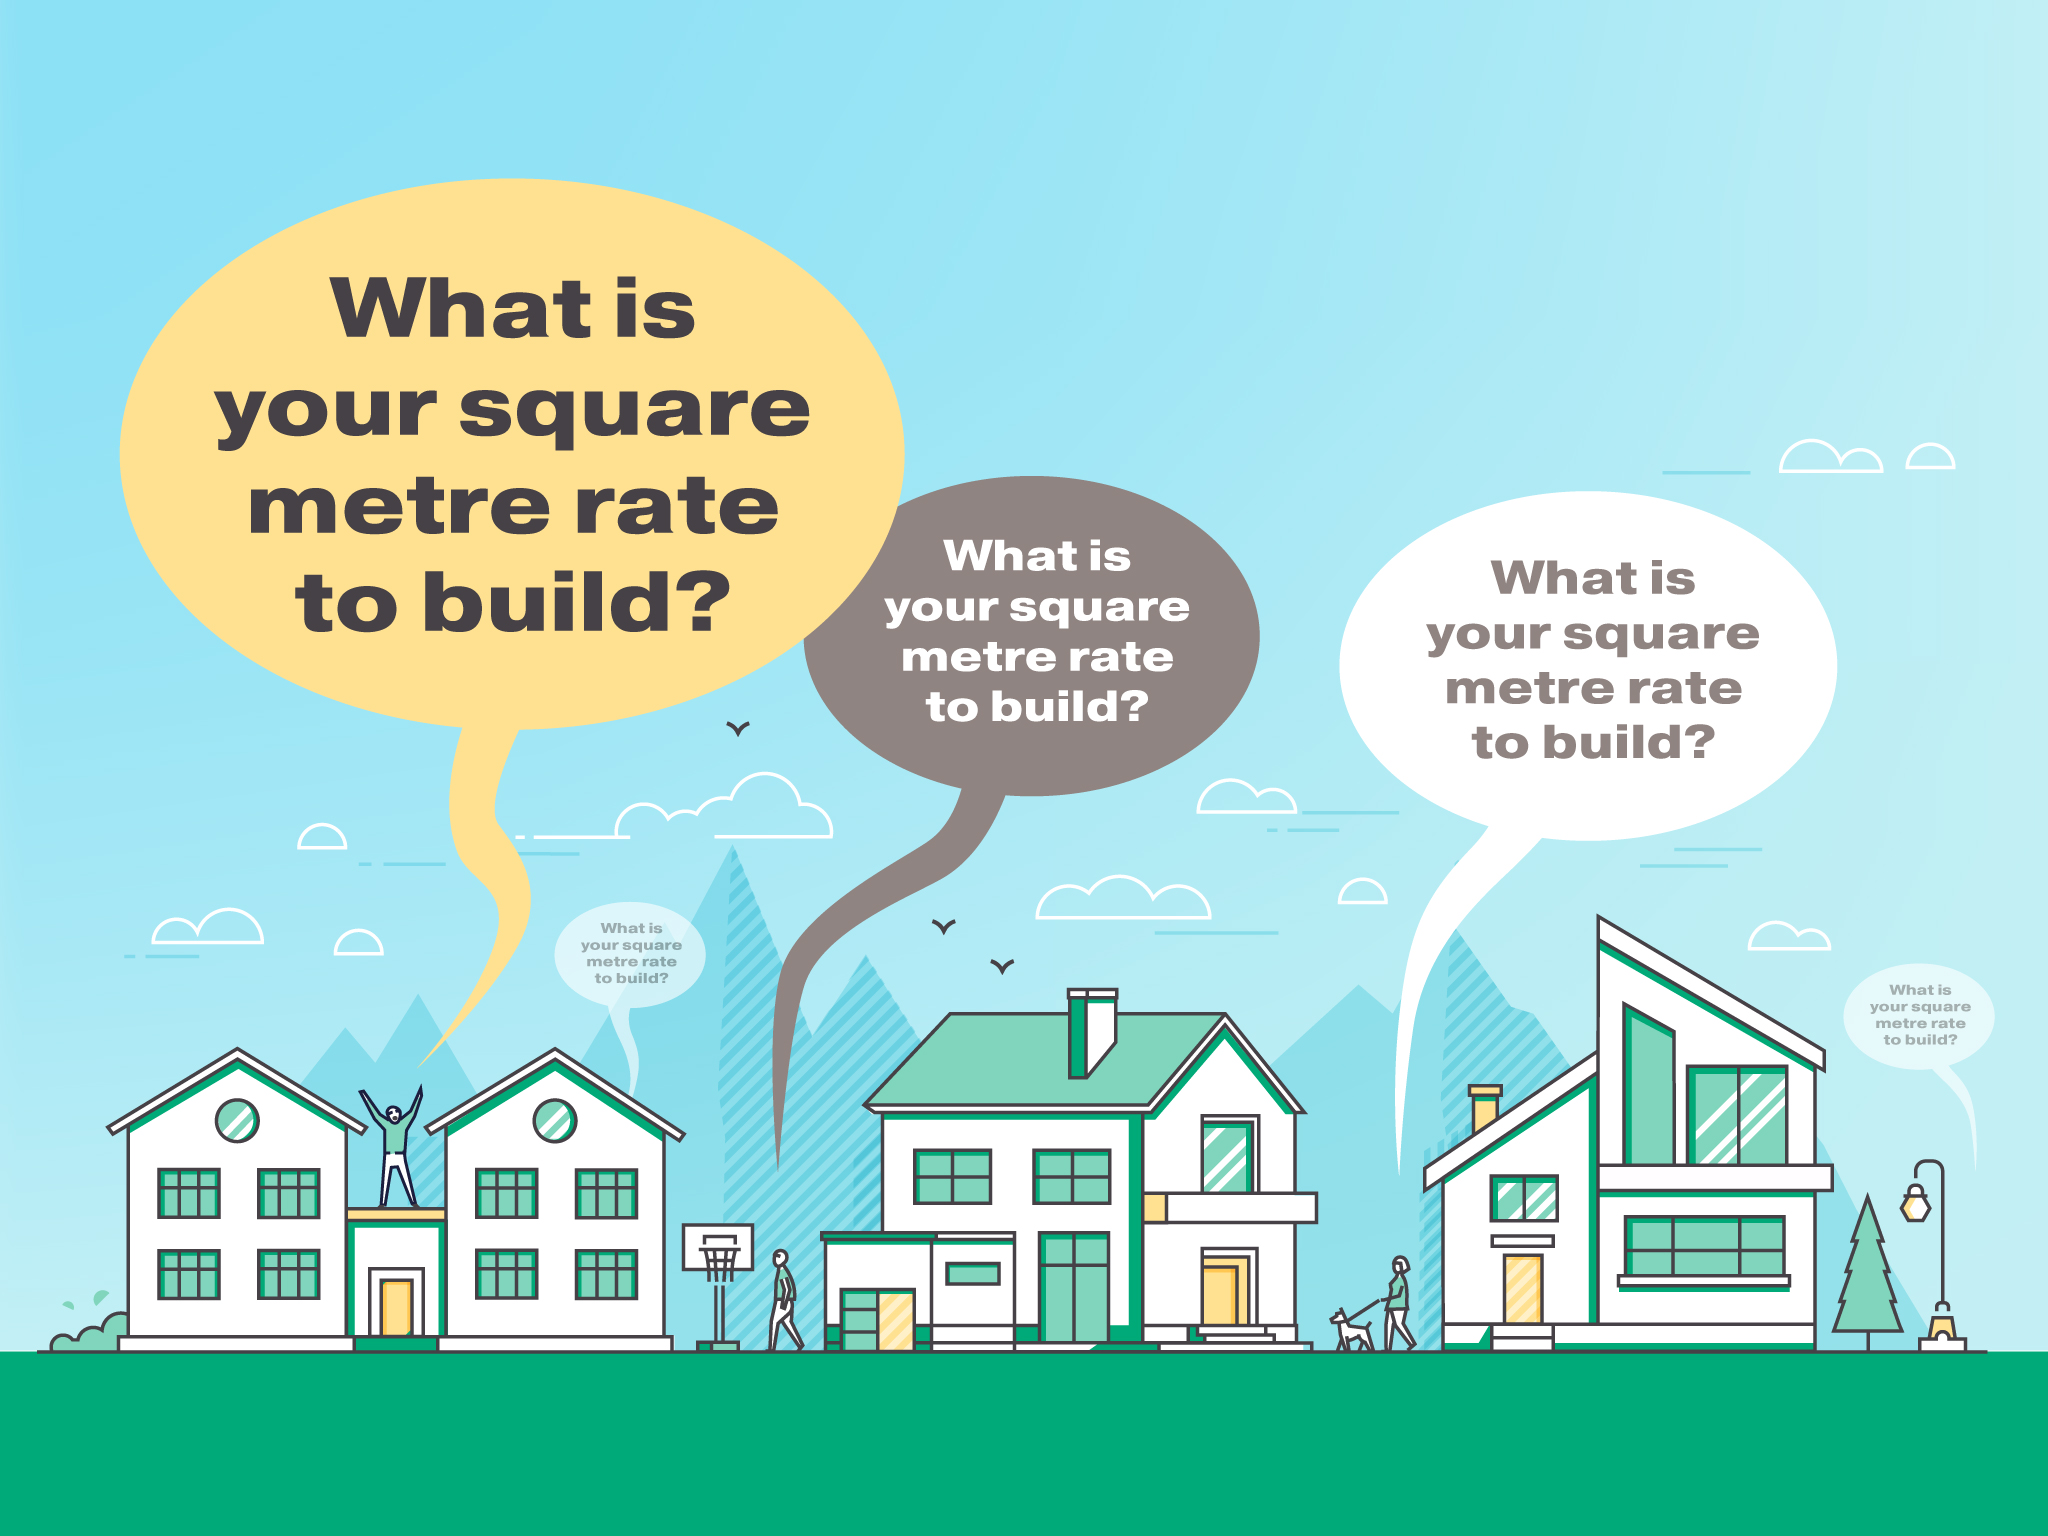 What is your square metre rate?